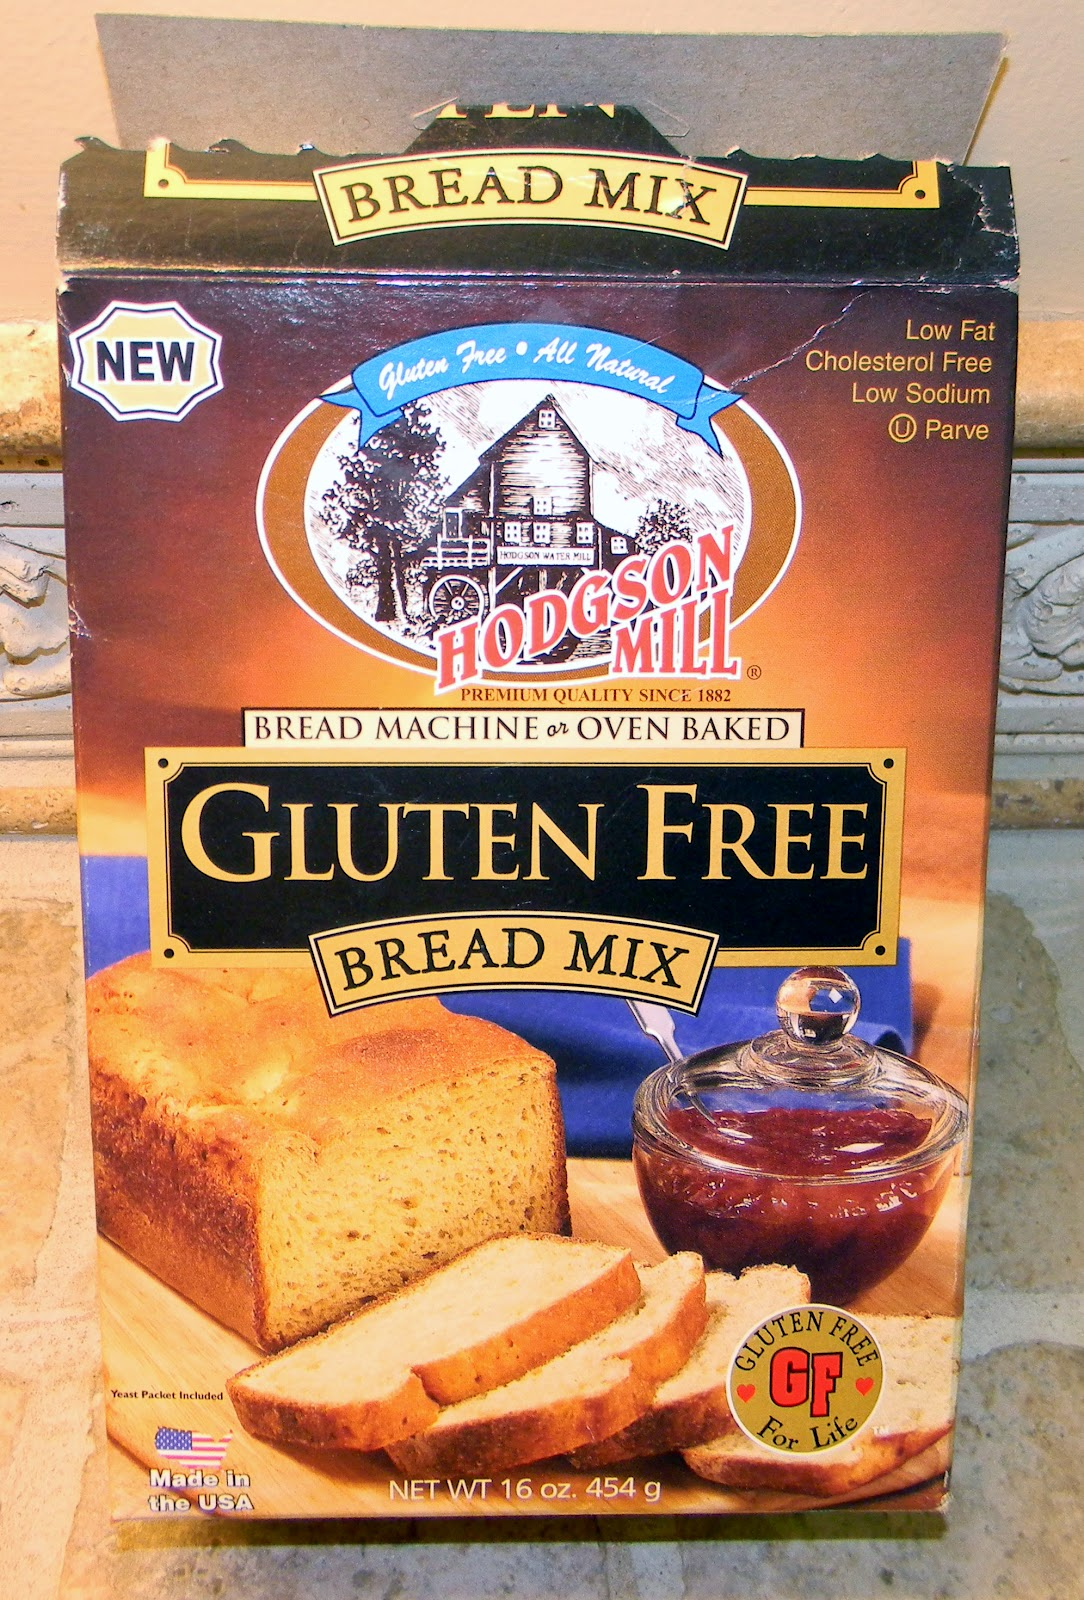 4 U Gluten Free: My First Loaf of Bread in New Bread Machine